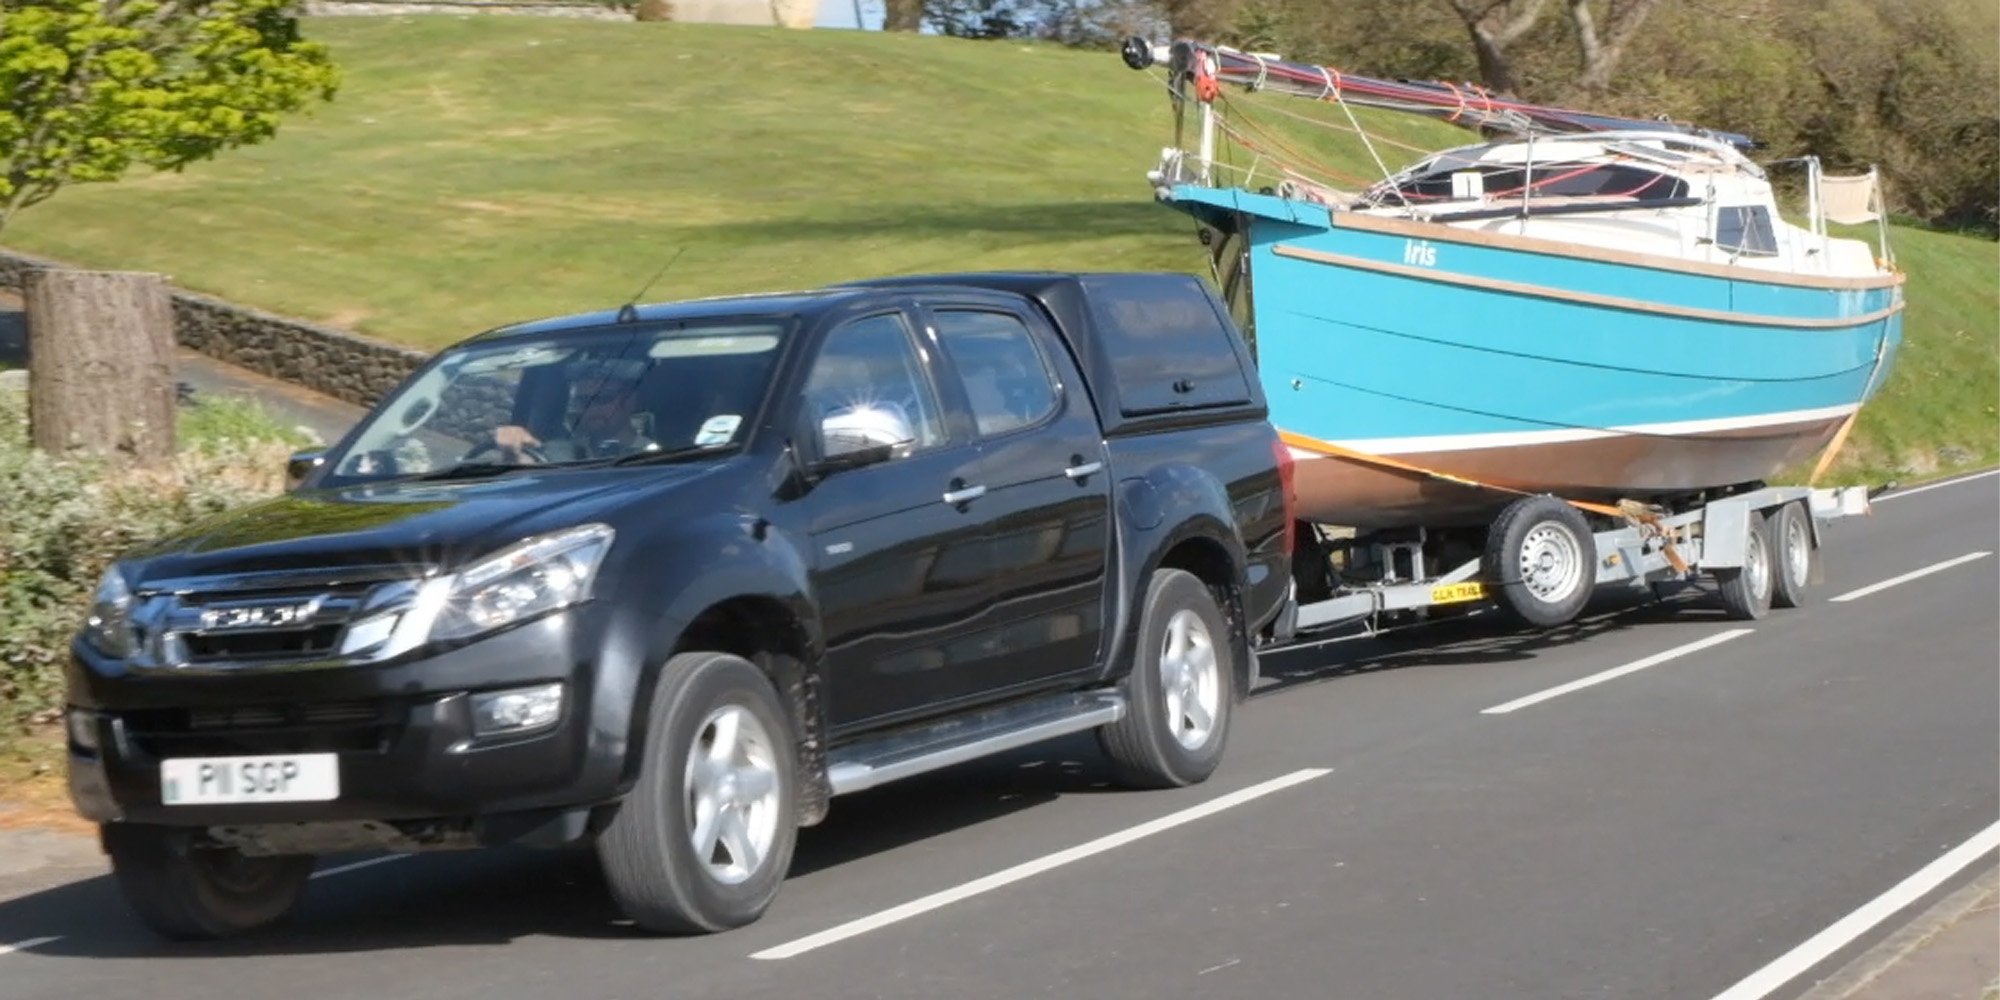 Bay Cruiser 26 towing